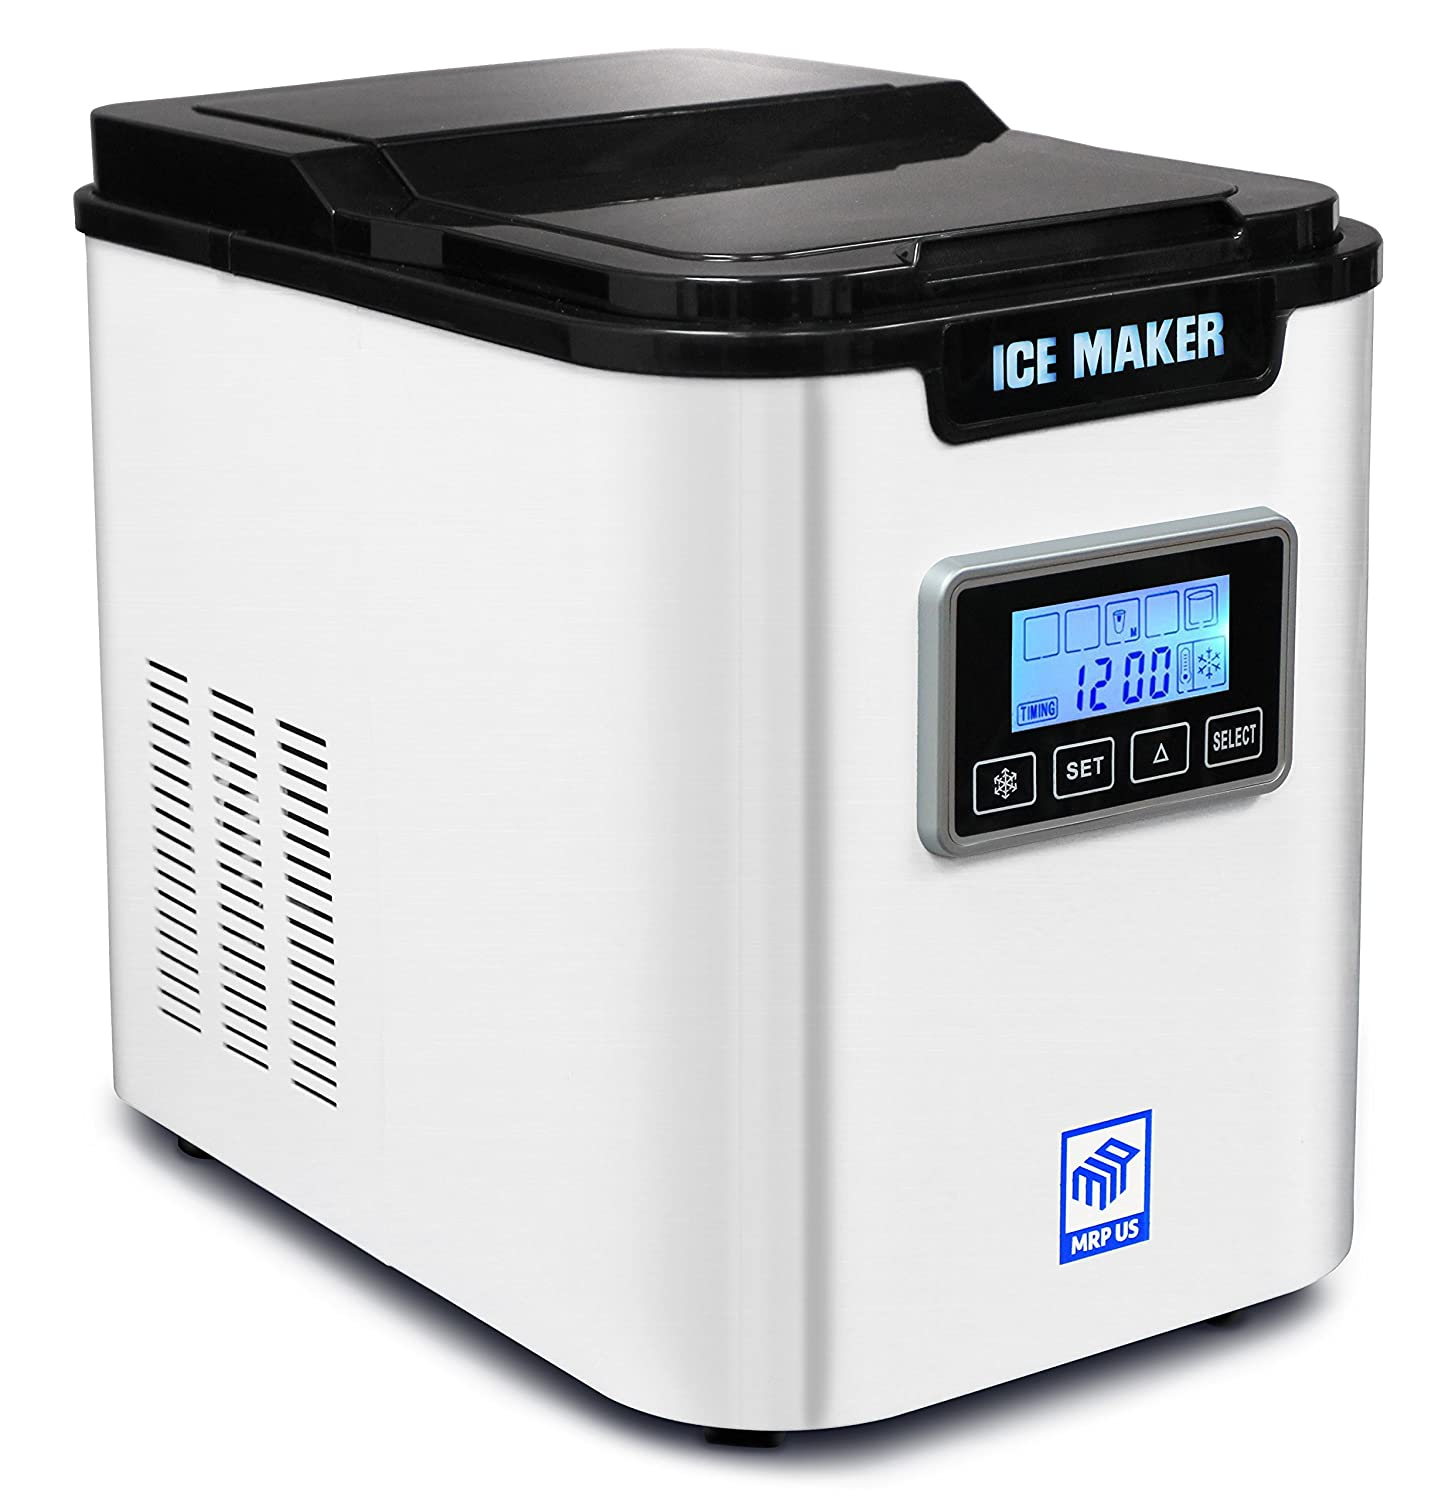 MRP US Portable Ice Maker IC703 With 3 Selectable Cube Size and Timer(White) for Home, Offices, Schools & Commercial Use.